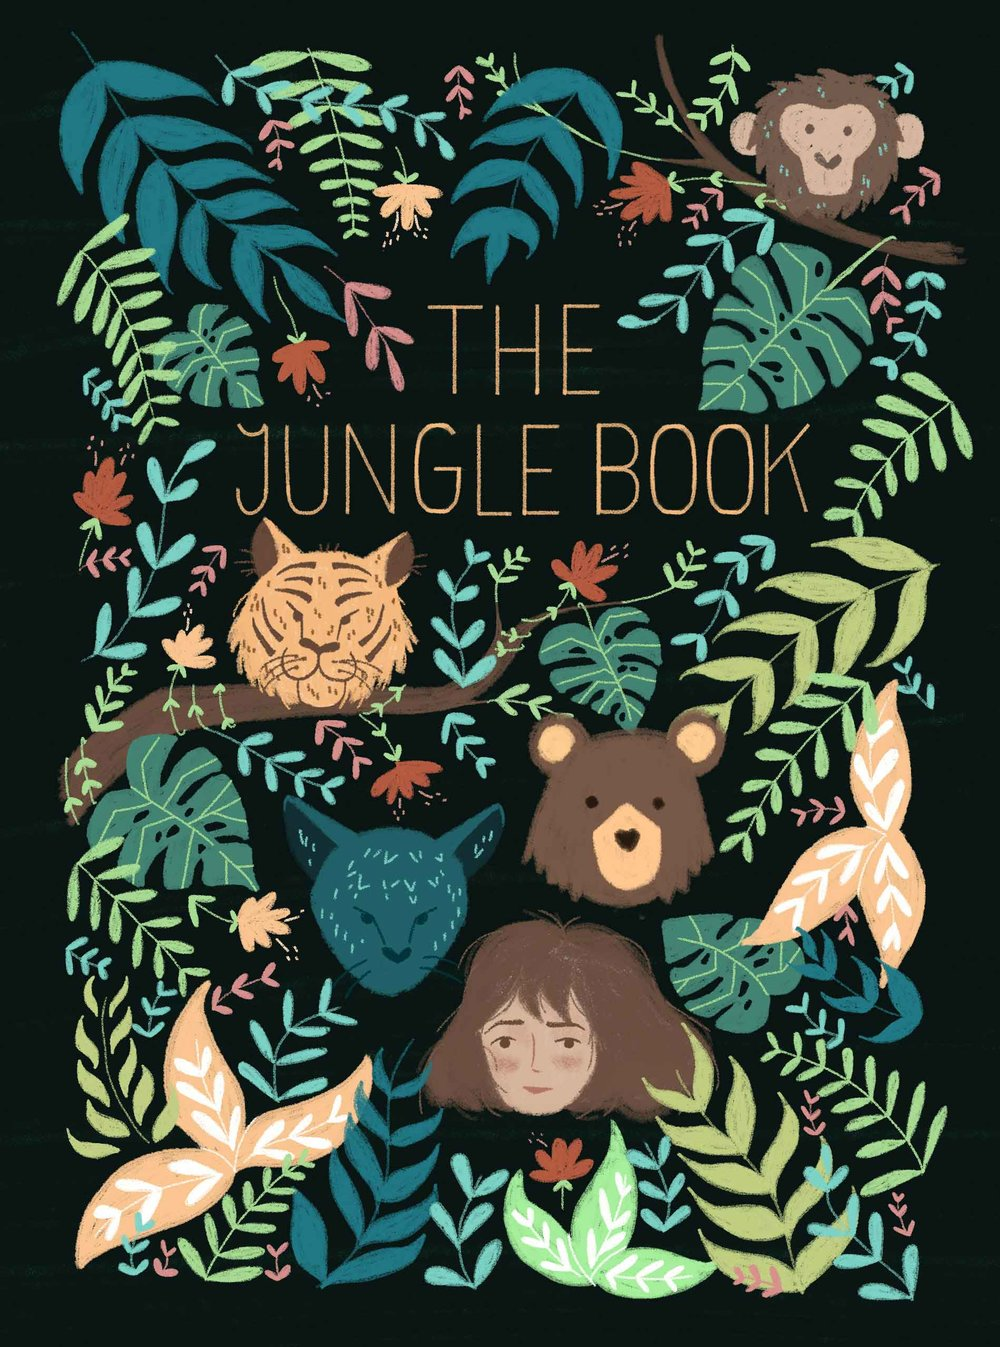 The Jungle Book Illustration